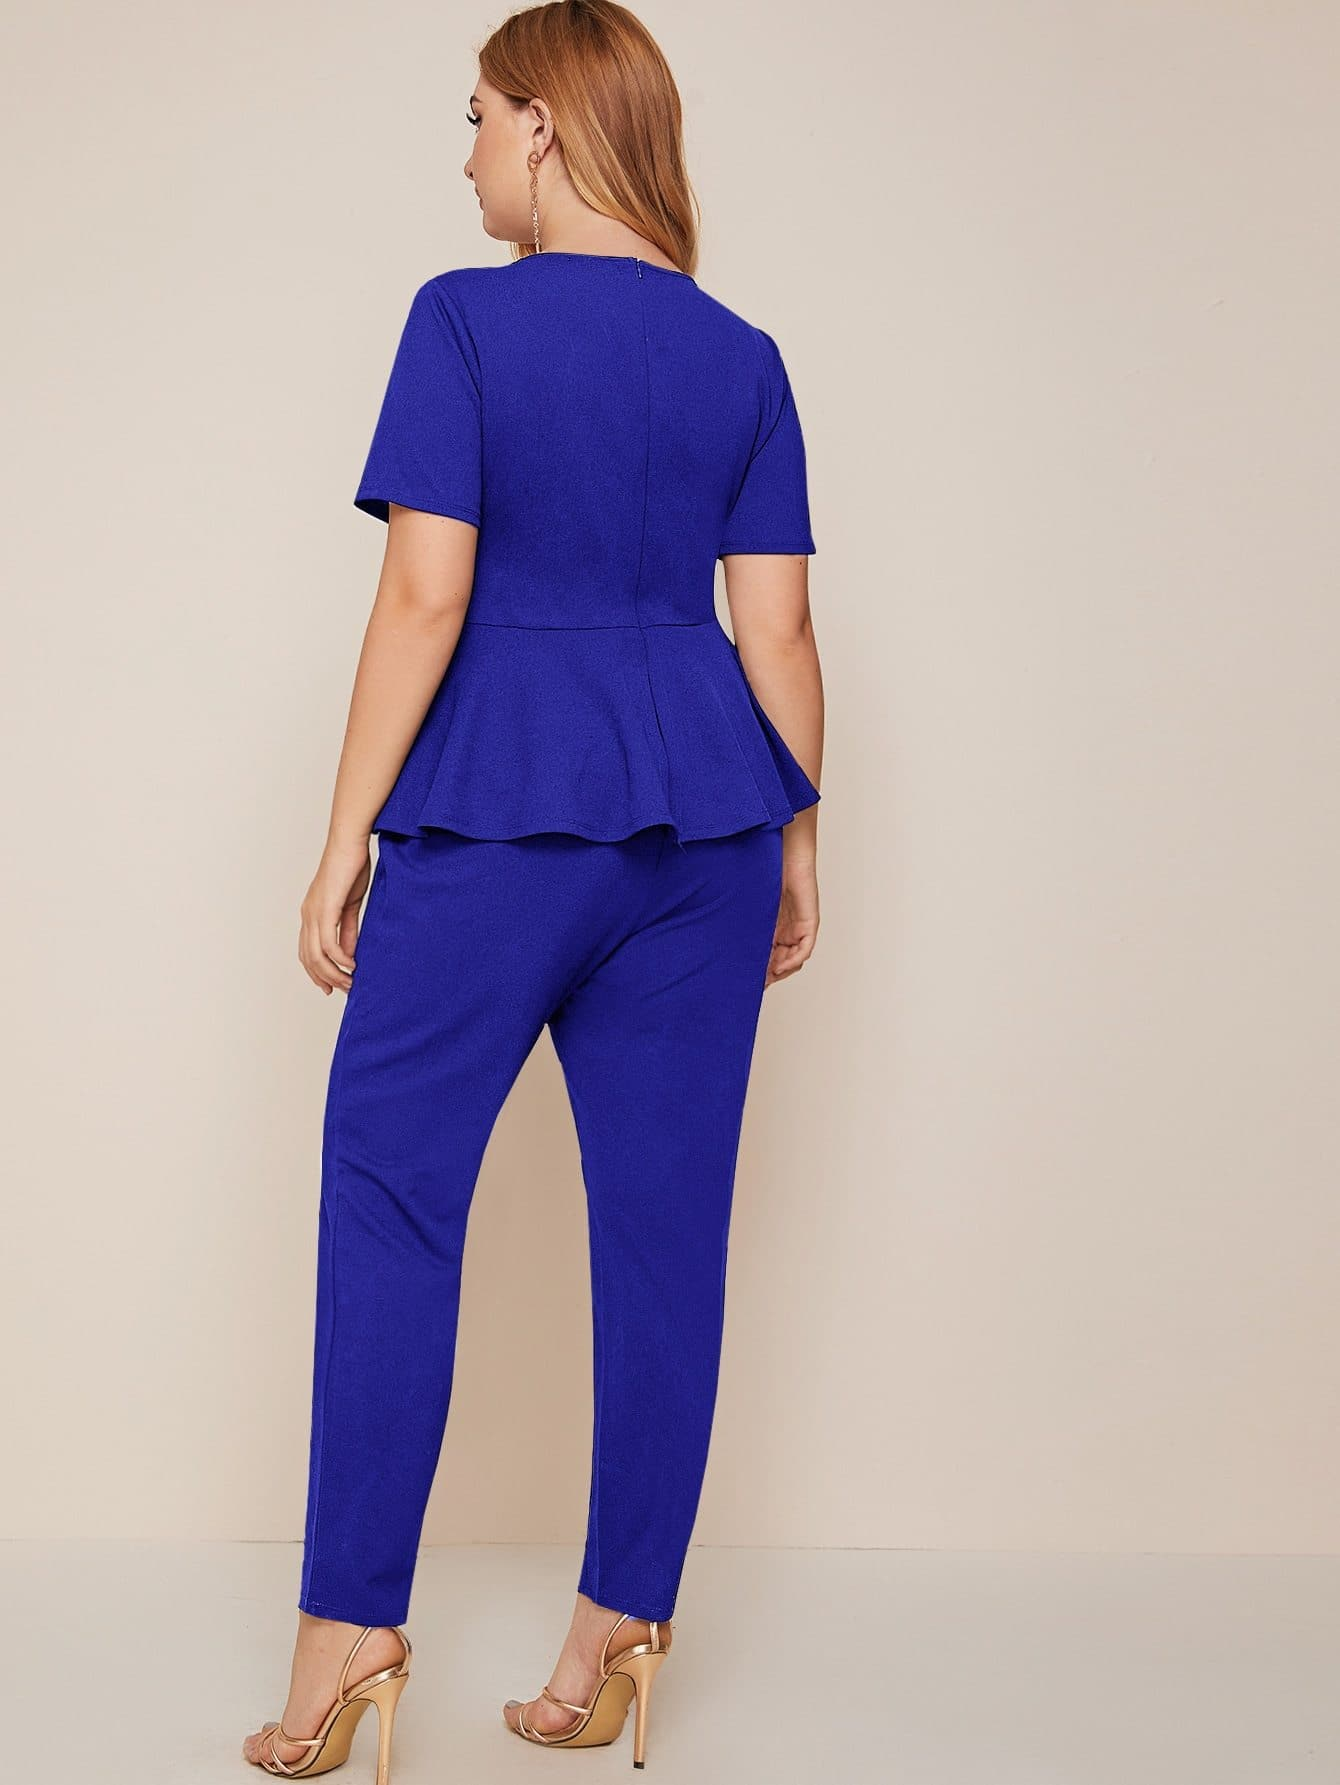 Plus Zip Back Solid Peplum Jumpsuit - FLJ CORPORATIONS